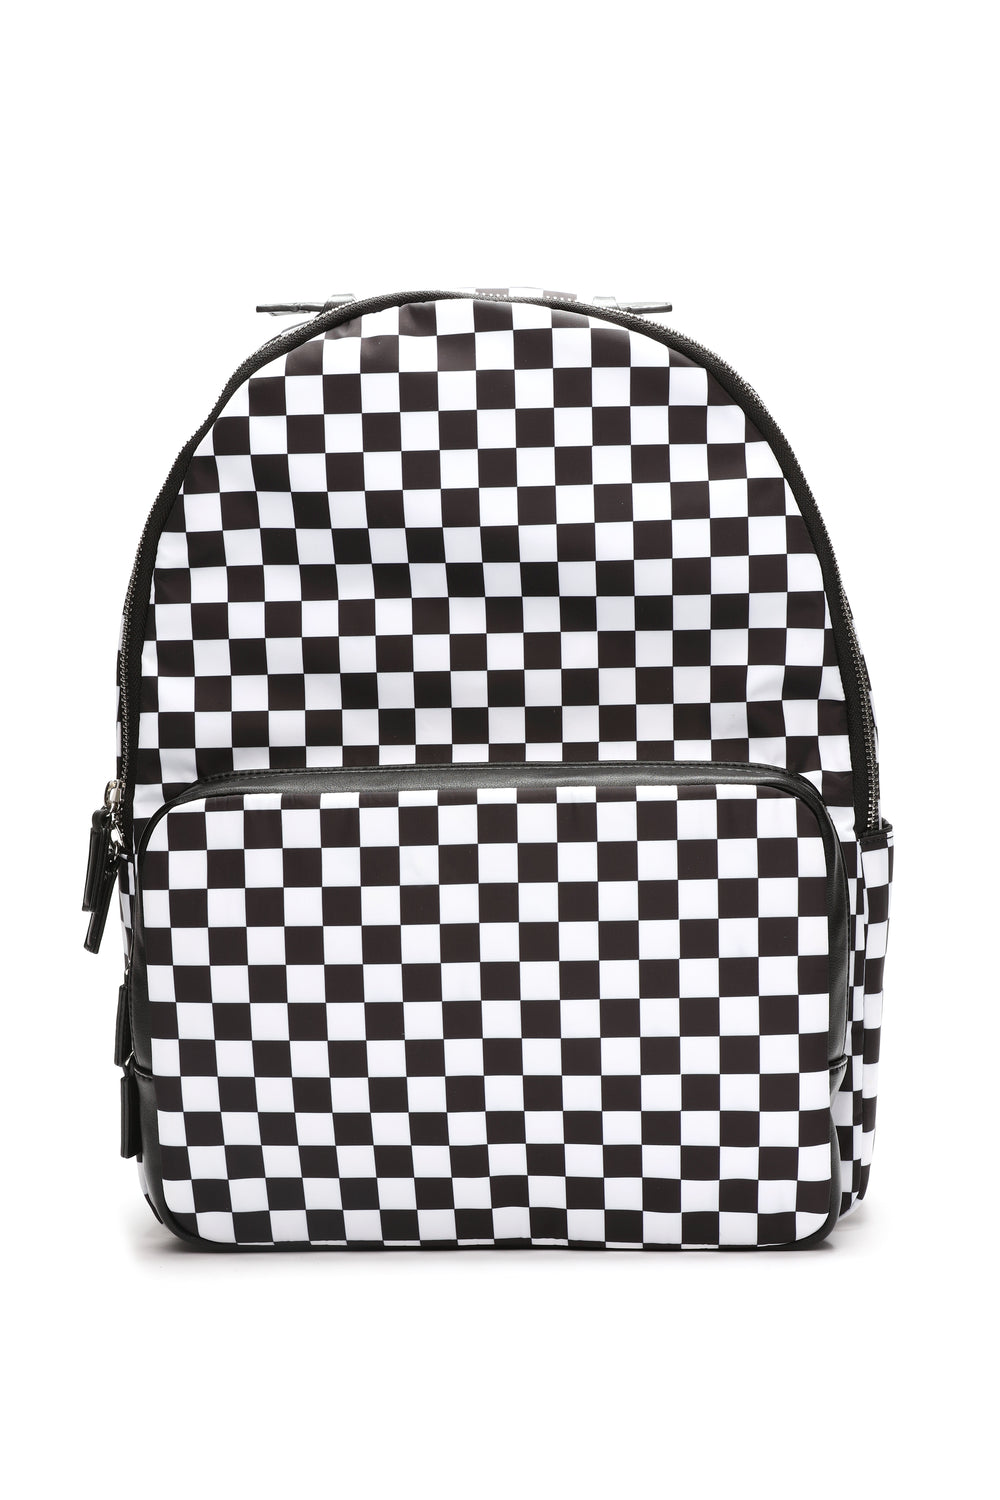 Hustle Backpack - Black/White